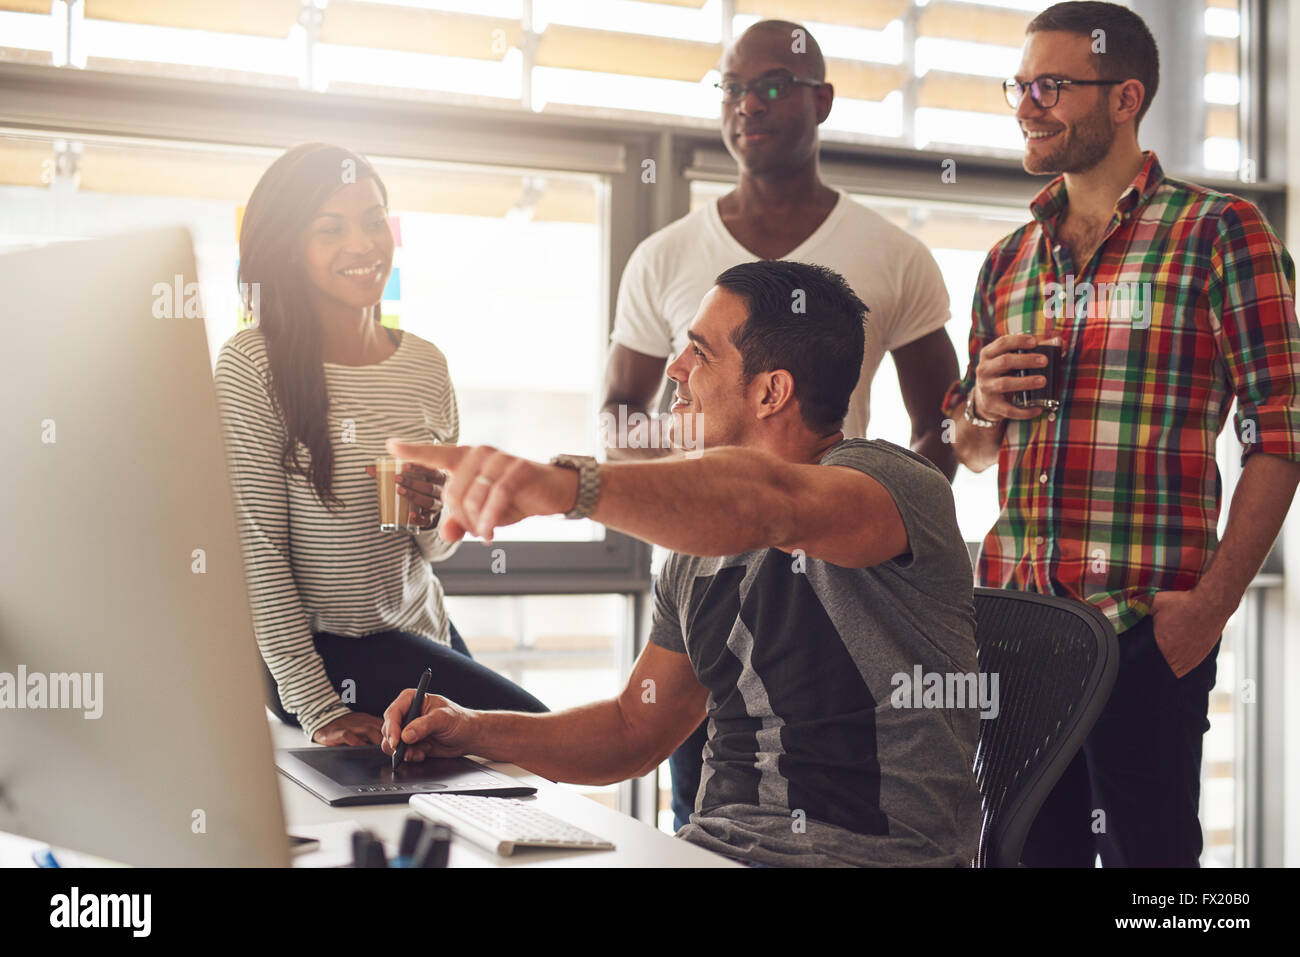 Man with stylus and tablet showing something on his computer to a group of three male and female casually dressed - Stock Image